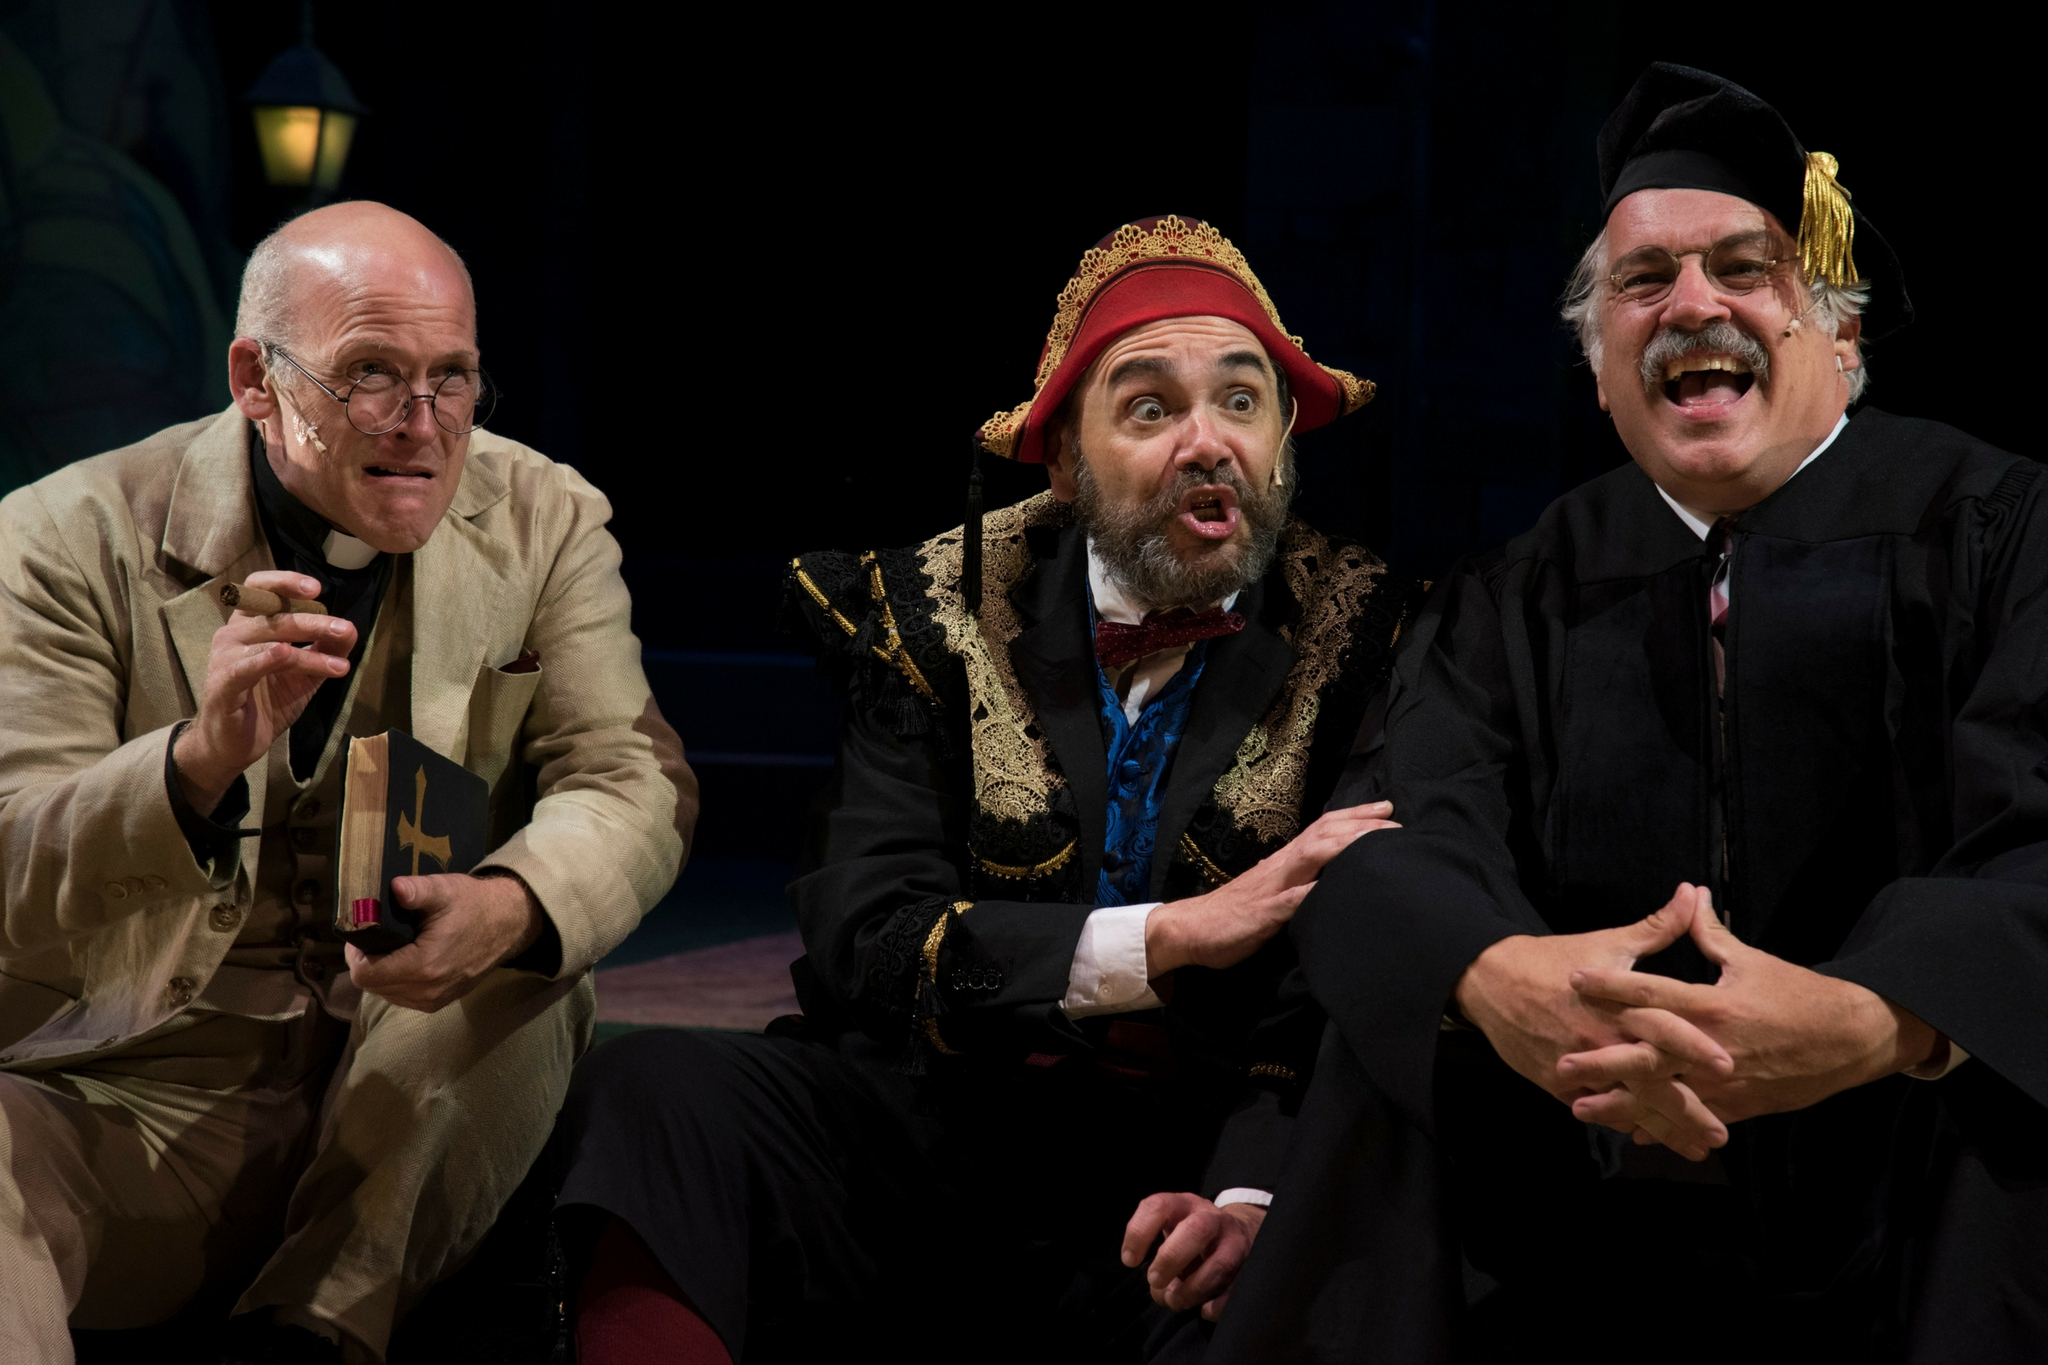 Mark Soucy (Sir Nathaniel), Remo Airaldi (Don Armado). and Fred Sullivan, Jr. (Holofernes) in Love's Labour's Lost, Shakespeare on the Common 2016-Photo by Andrew Brilliant